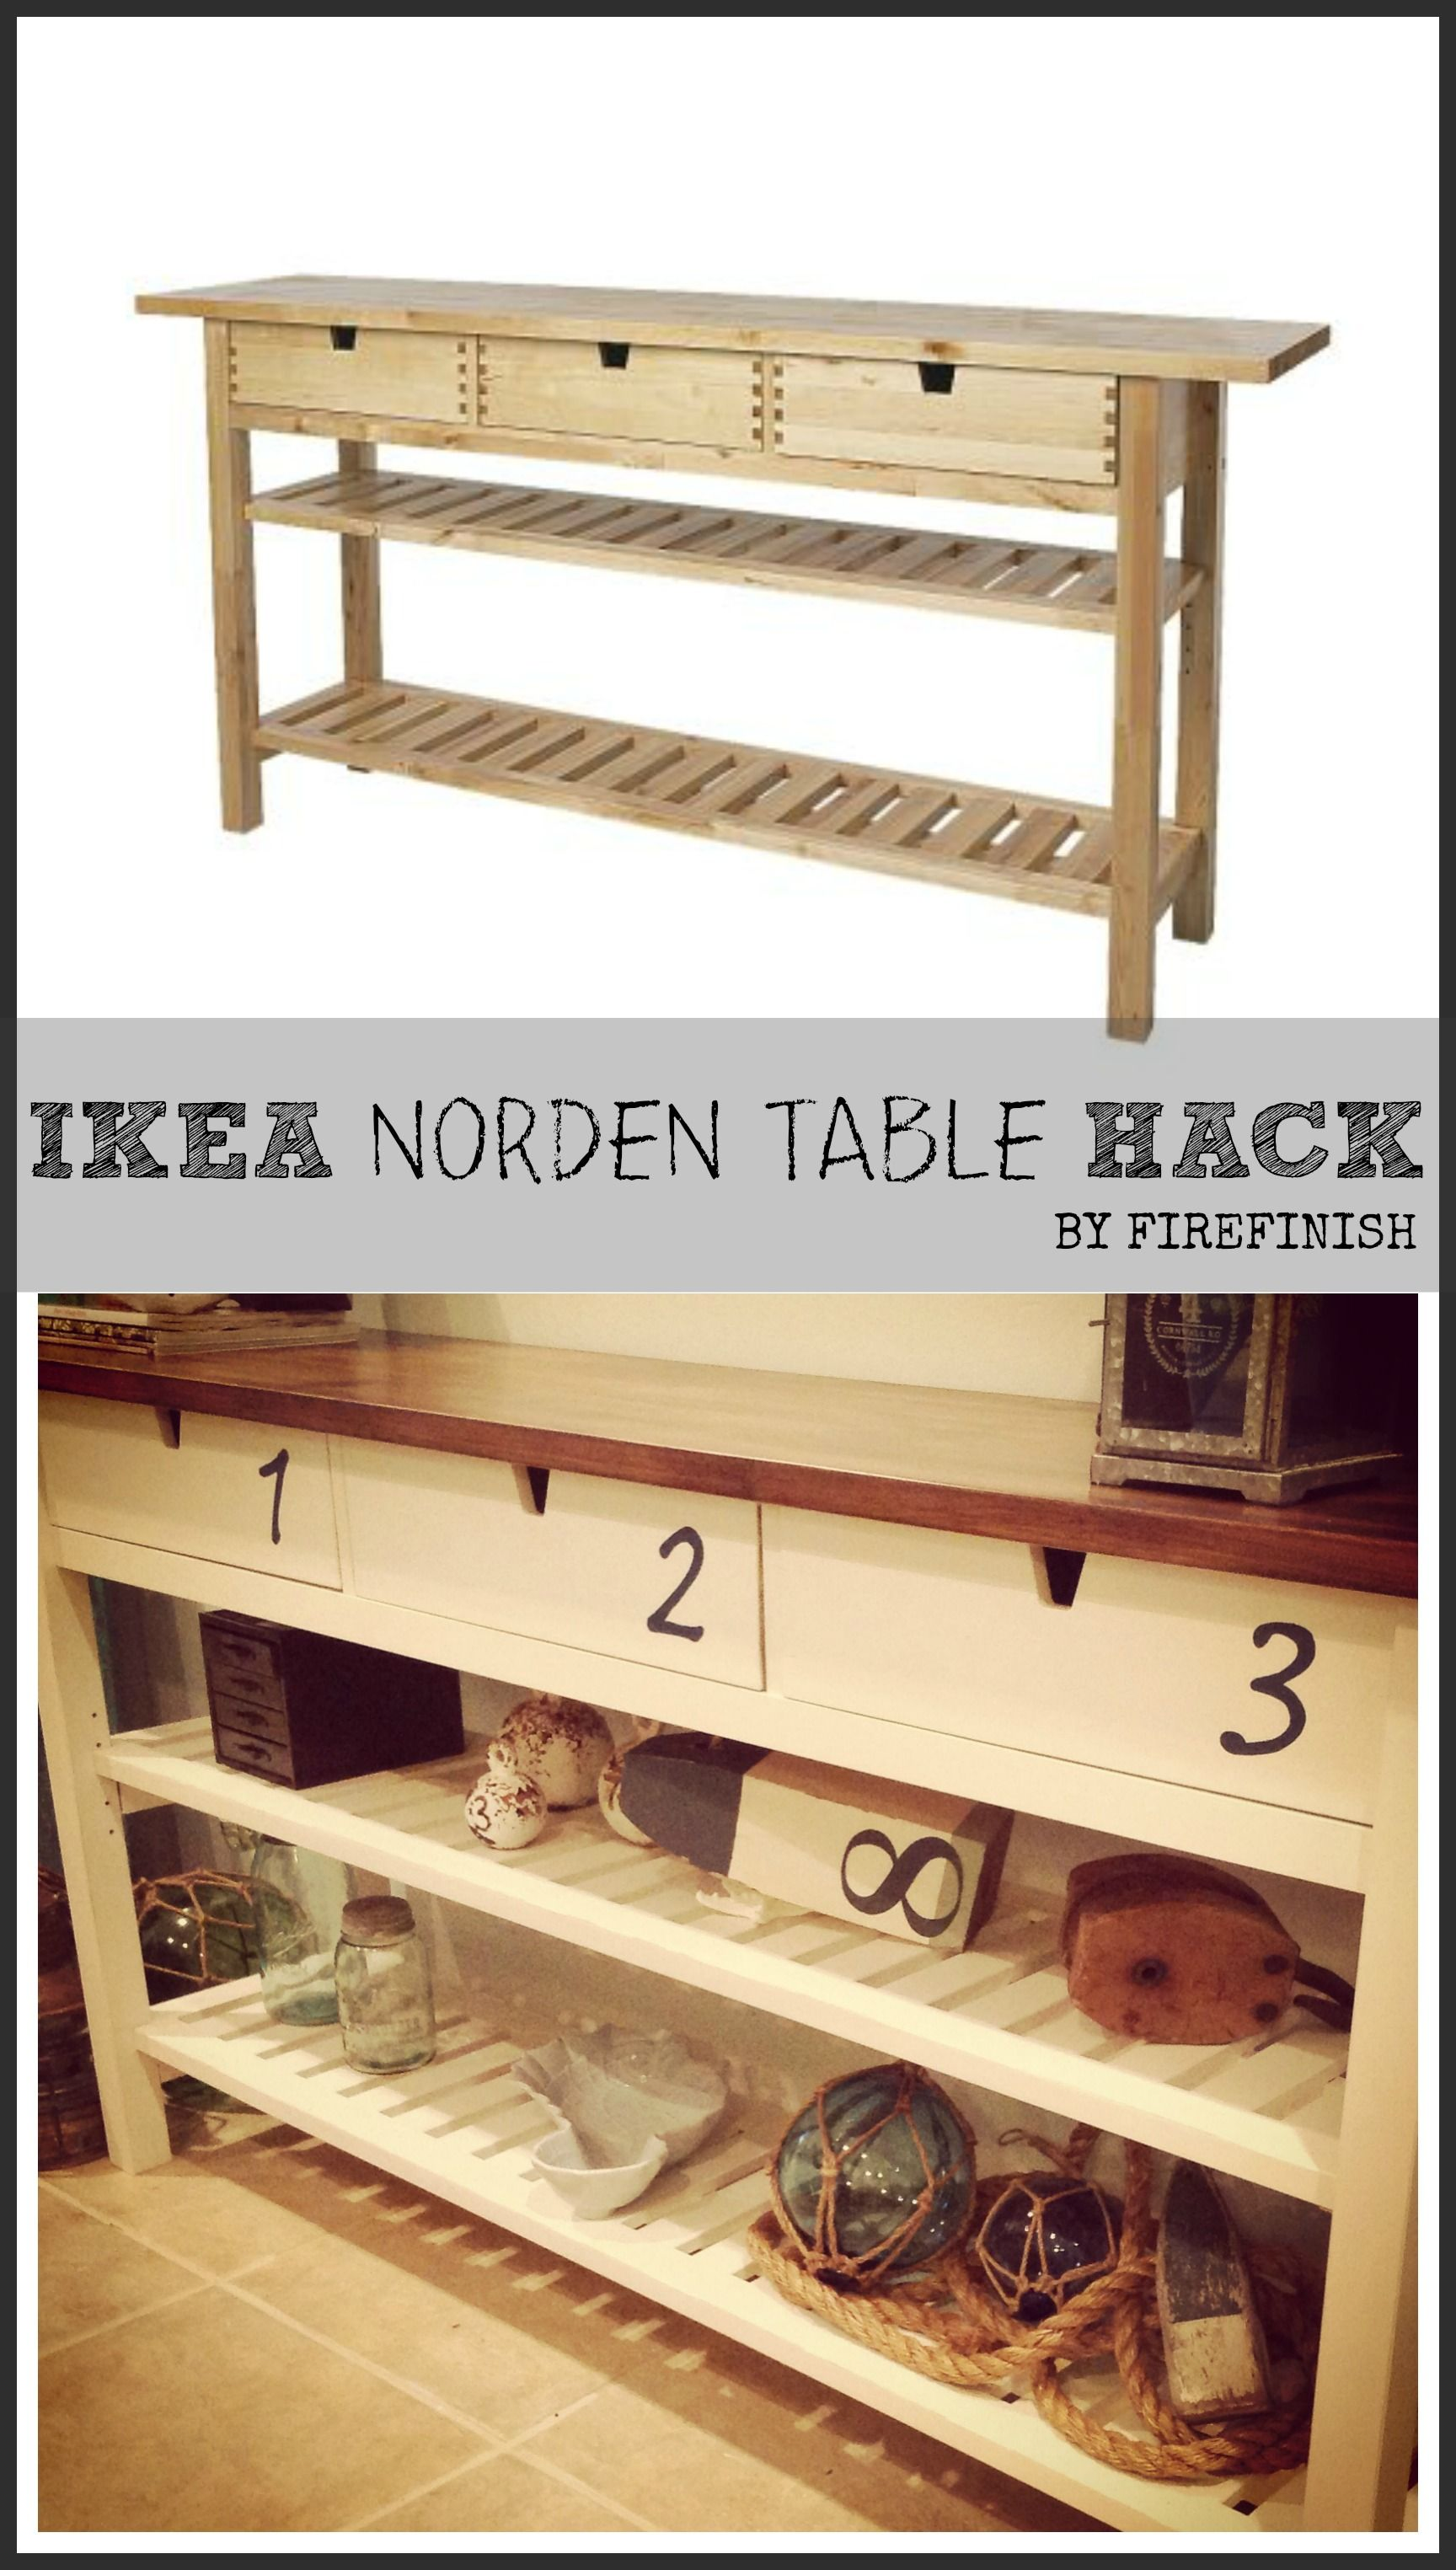 Ikea hack rden table hack stained top and numbers added